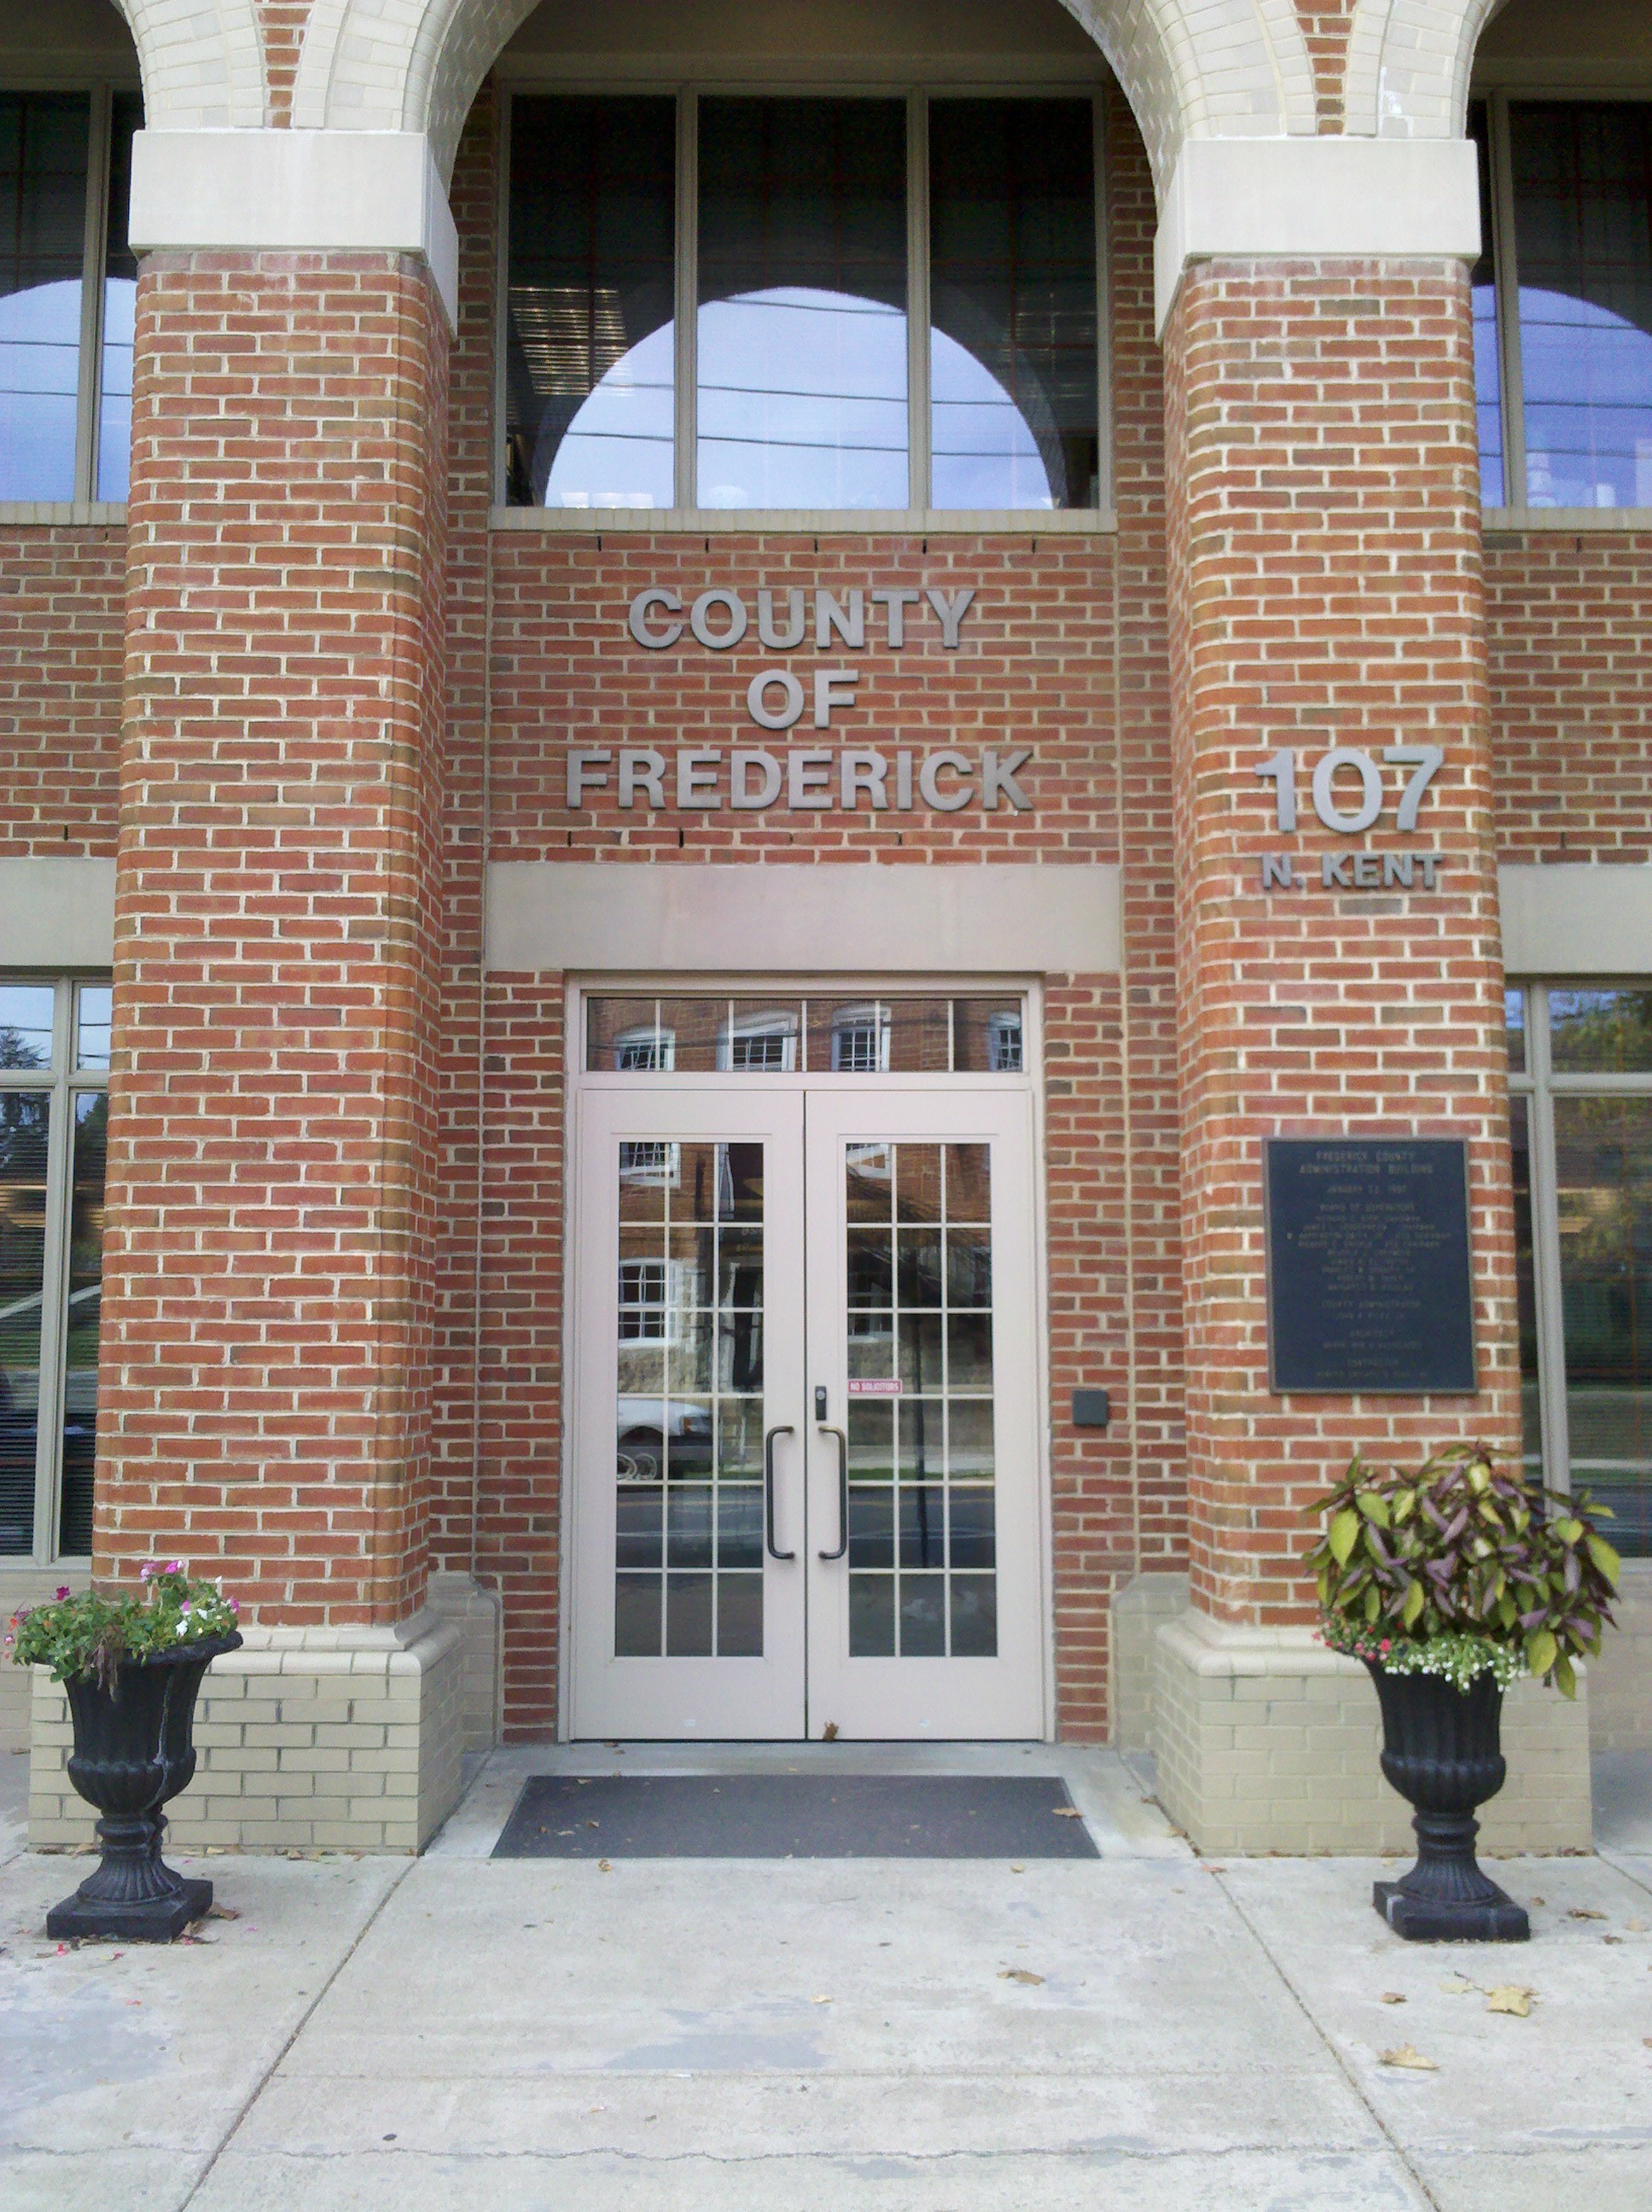 Frederick County Administration